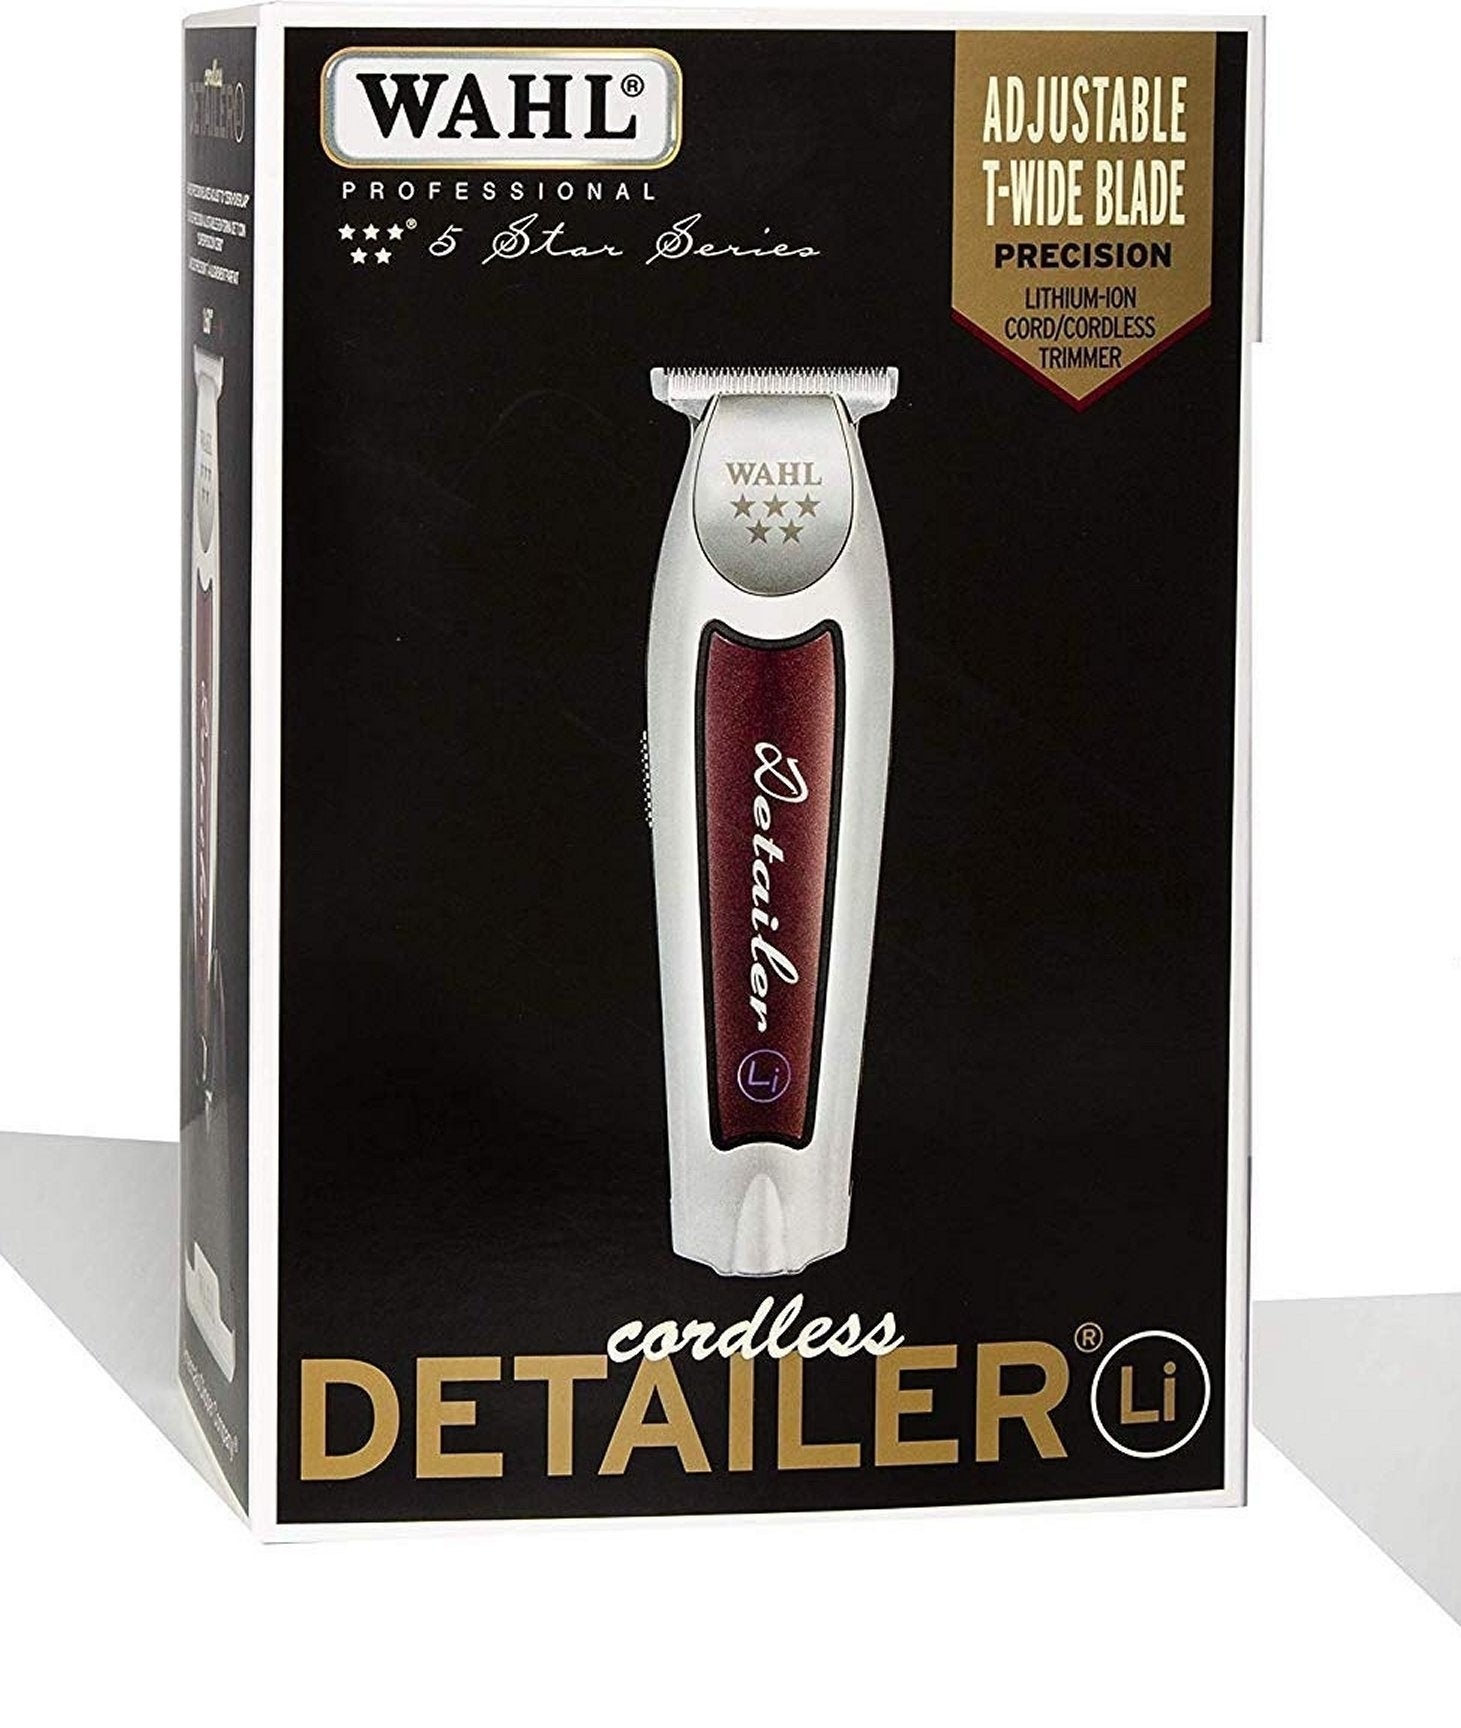 WAHL PROFESSIONAL 5 STAR CORDLESS DETAILER® TRIMMER